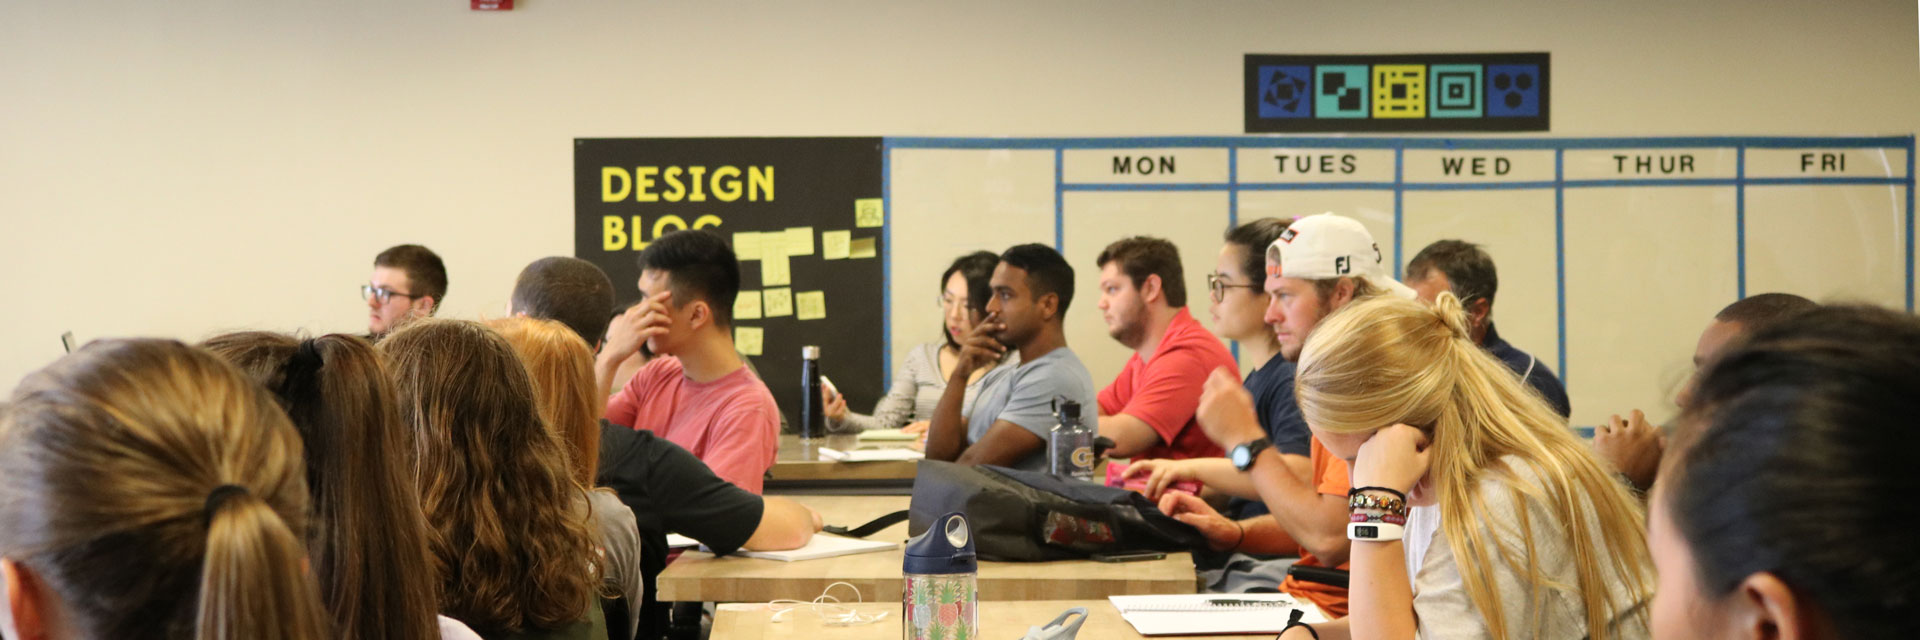 An audience of students, viewed from the side, listens intently to a Design Bloc professor at the front of the class.